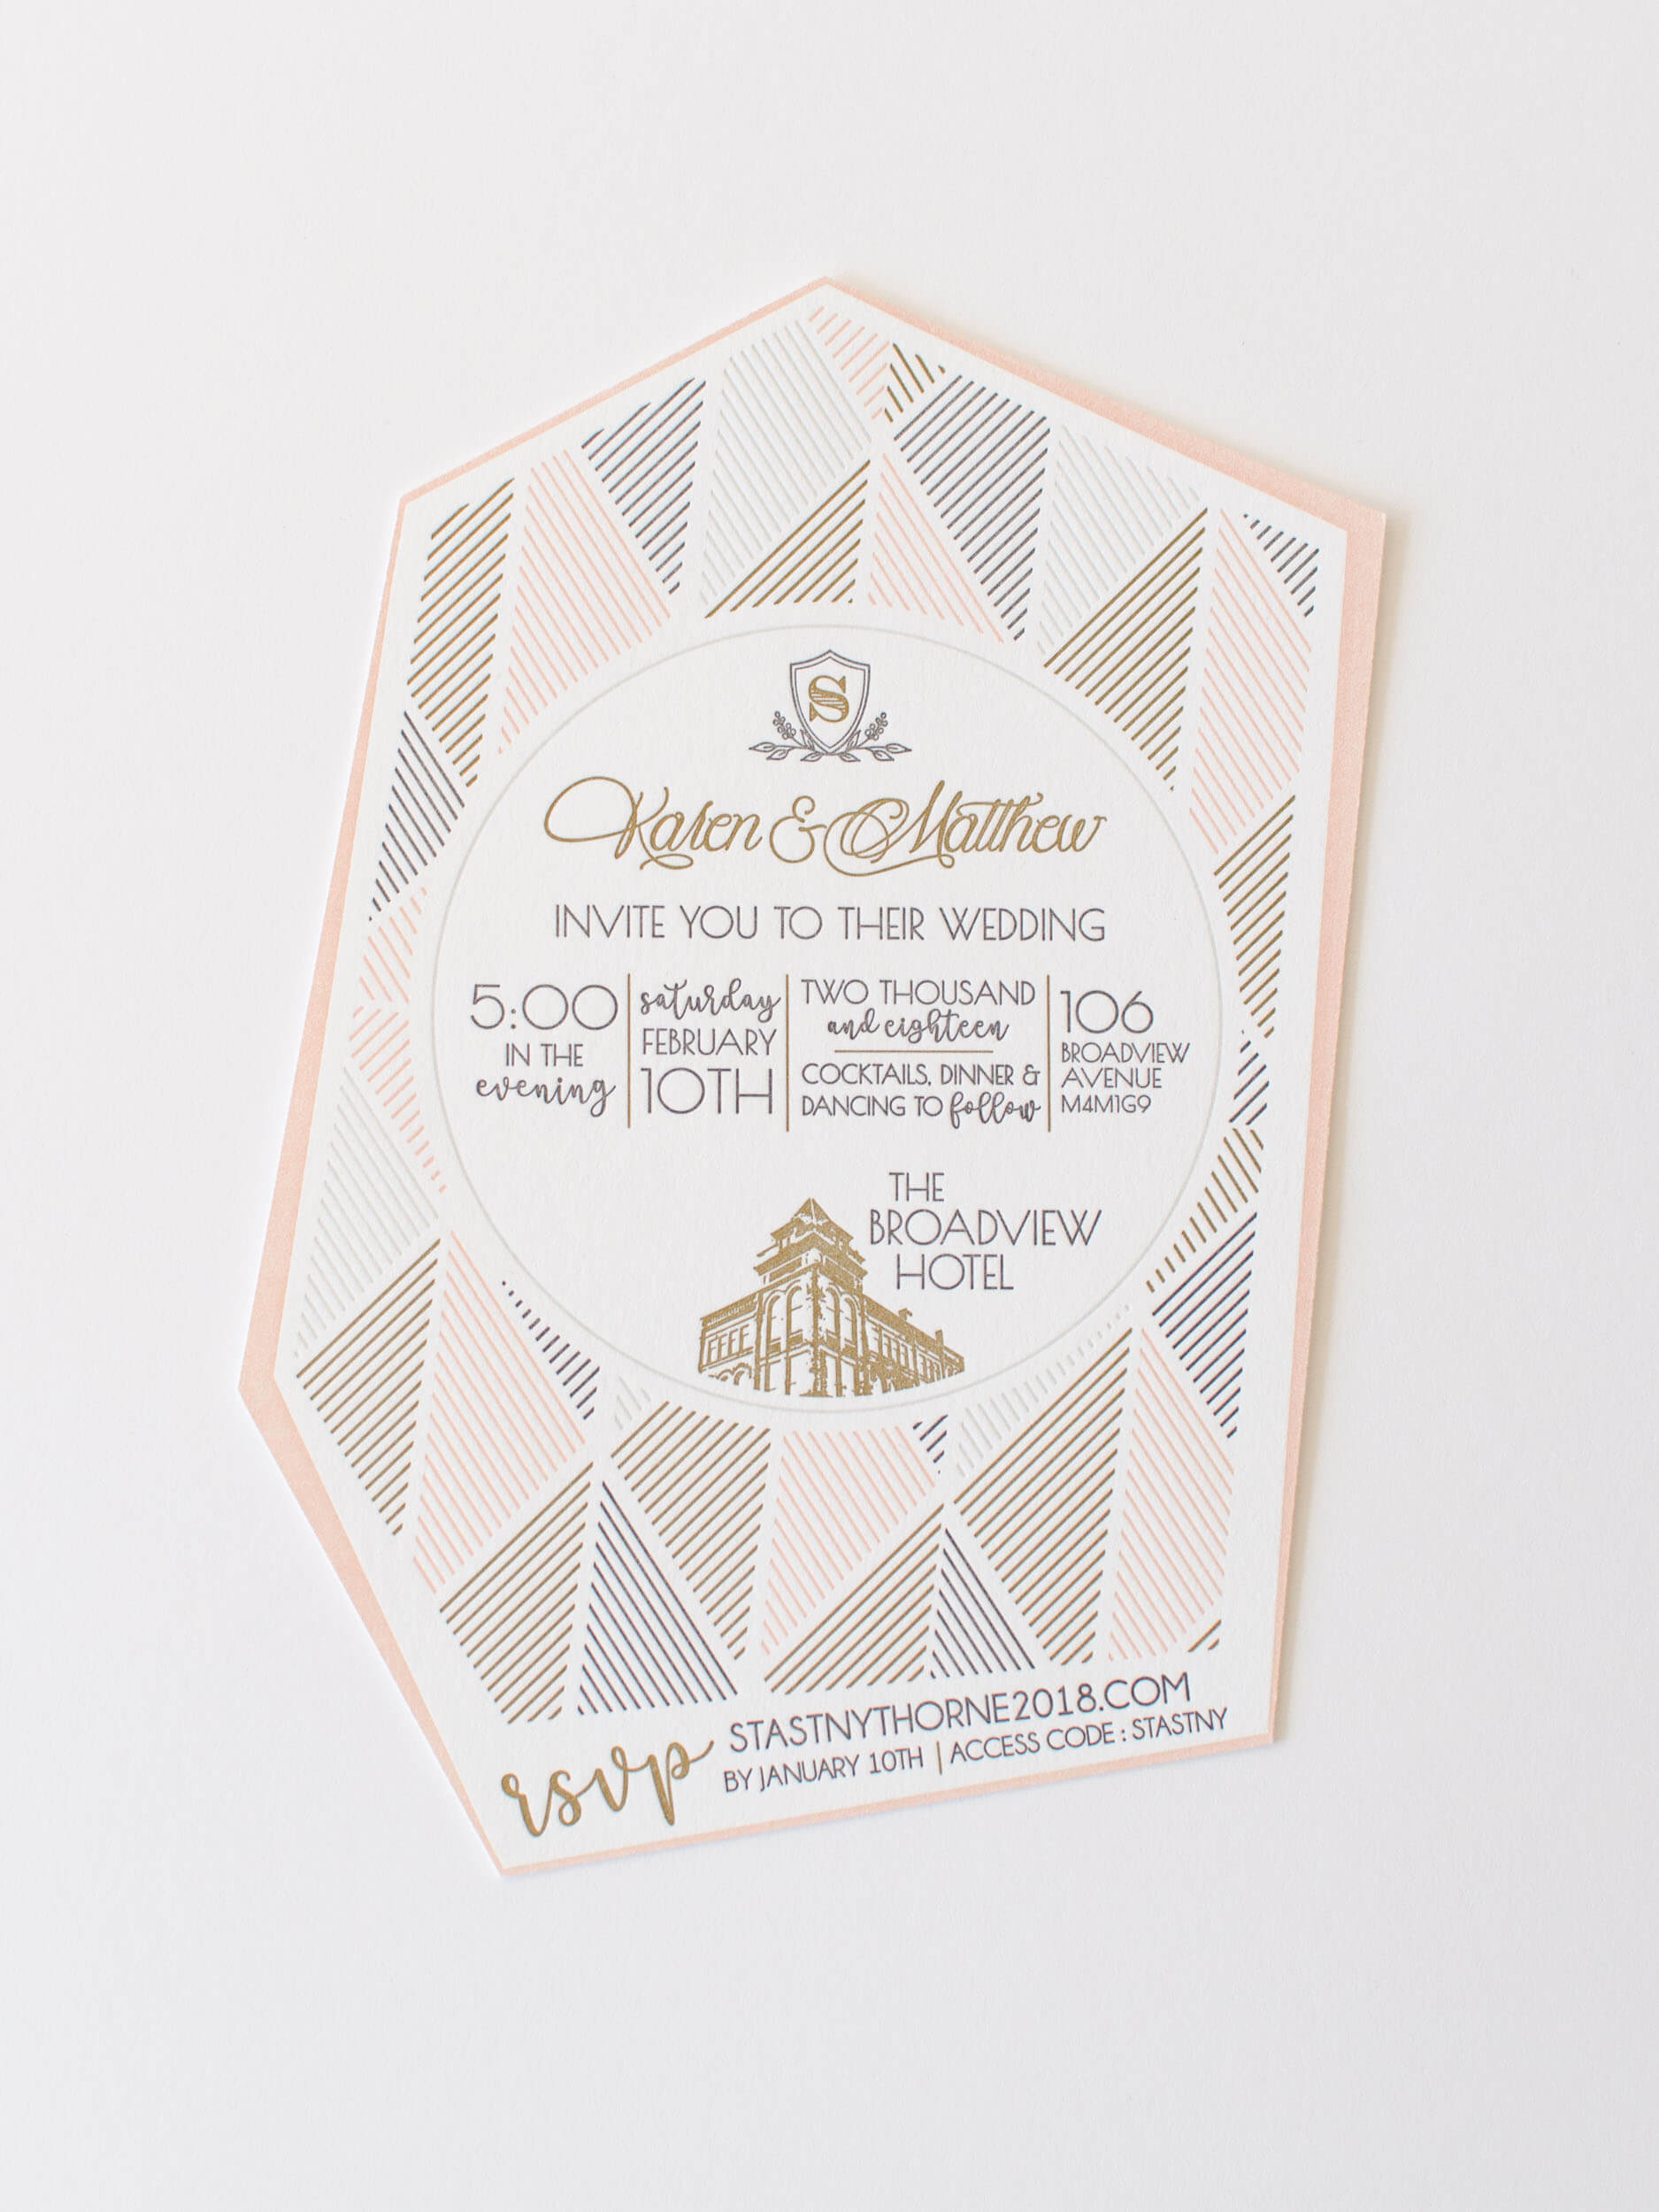 KarenMatthew_Letterpress-Wedding-Invite-6.jpg